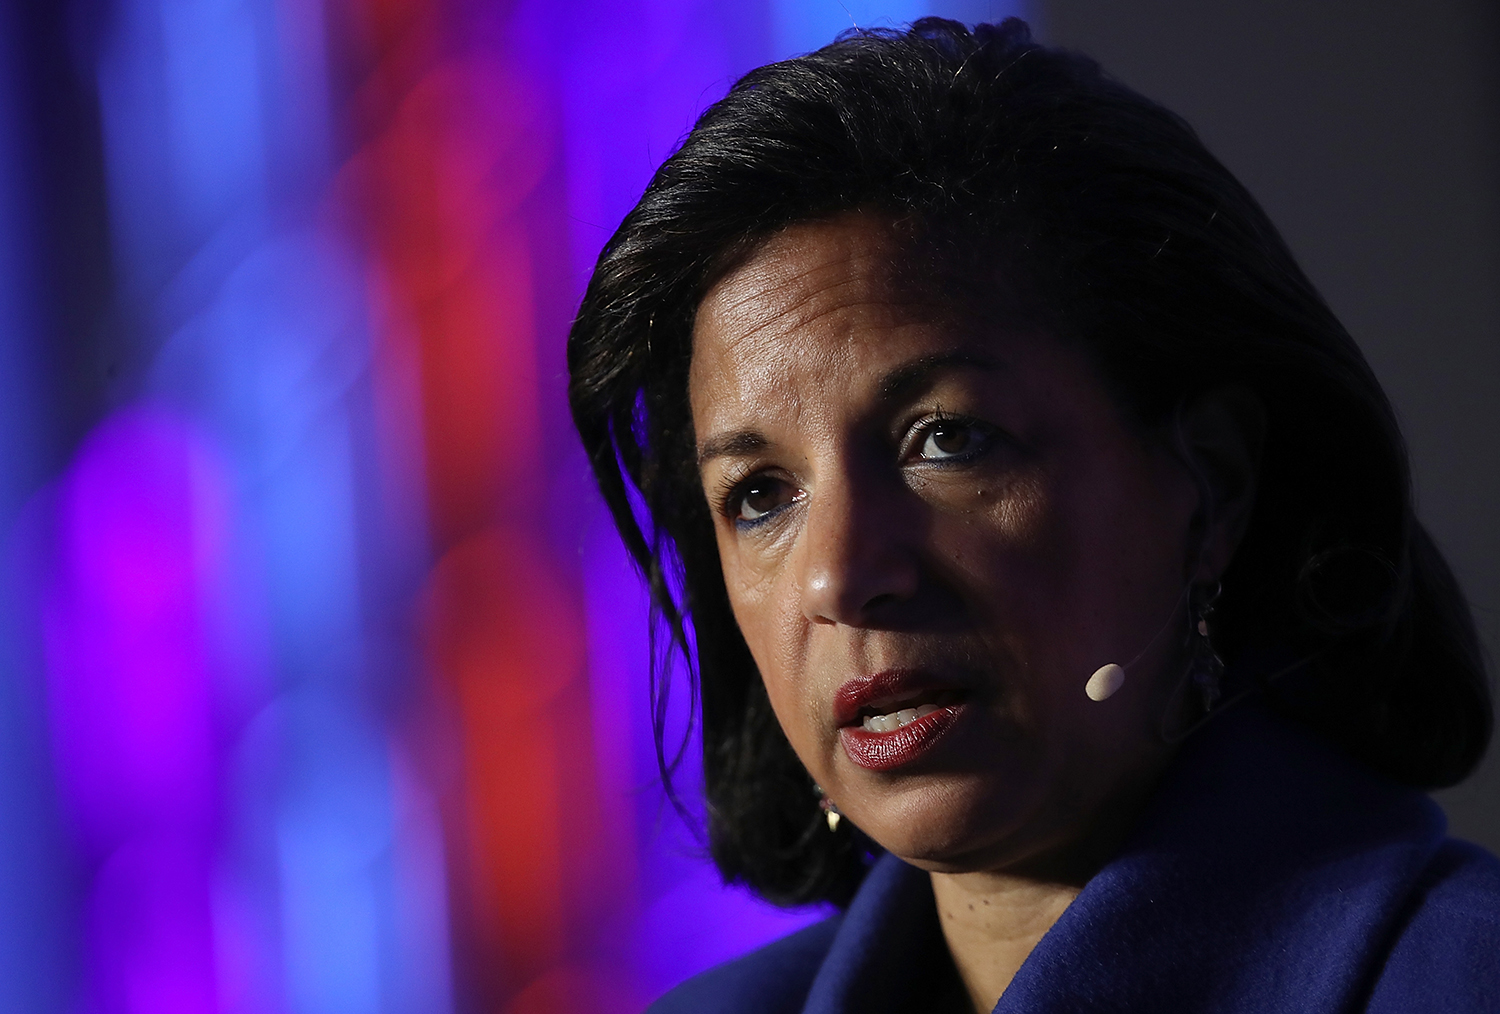 Former National Security Advisor Susan Rice at the J Street 2018 National Conference in Washington on April 16, 2018.